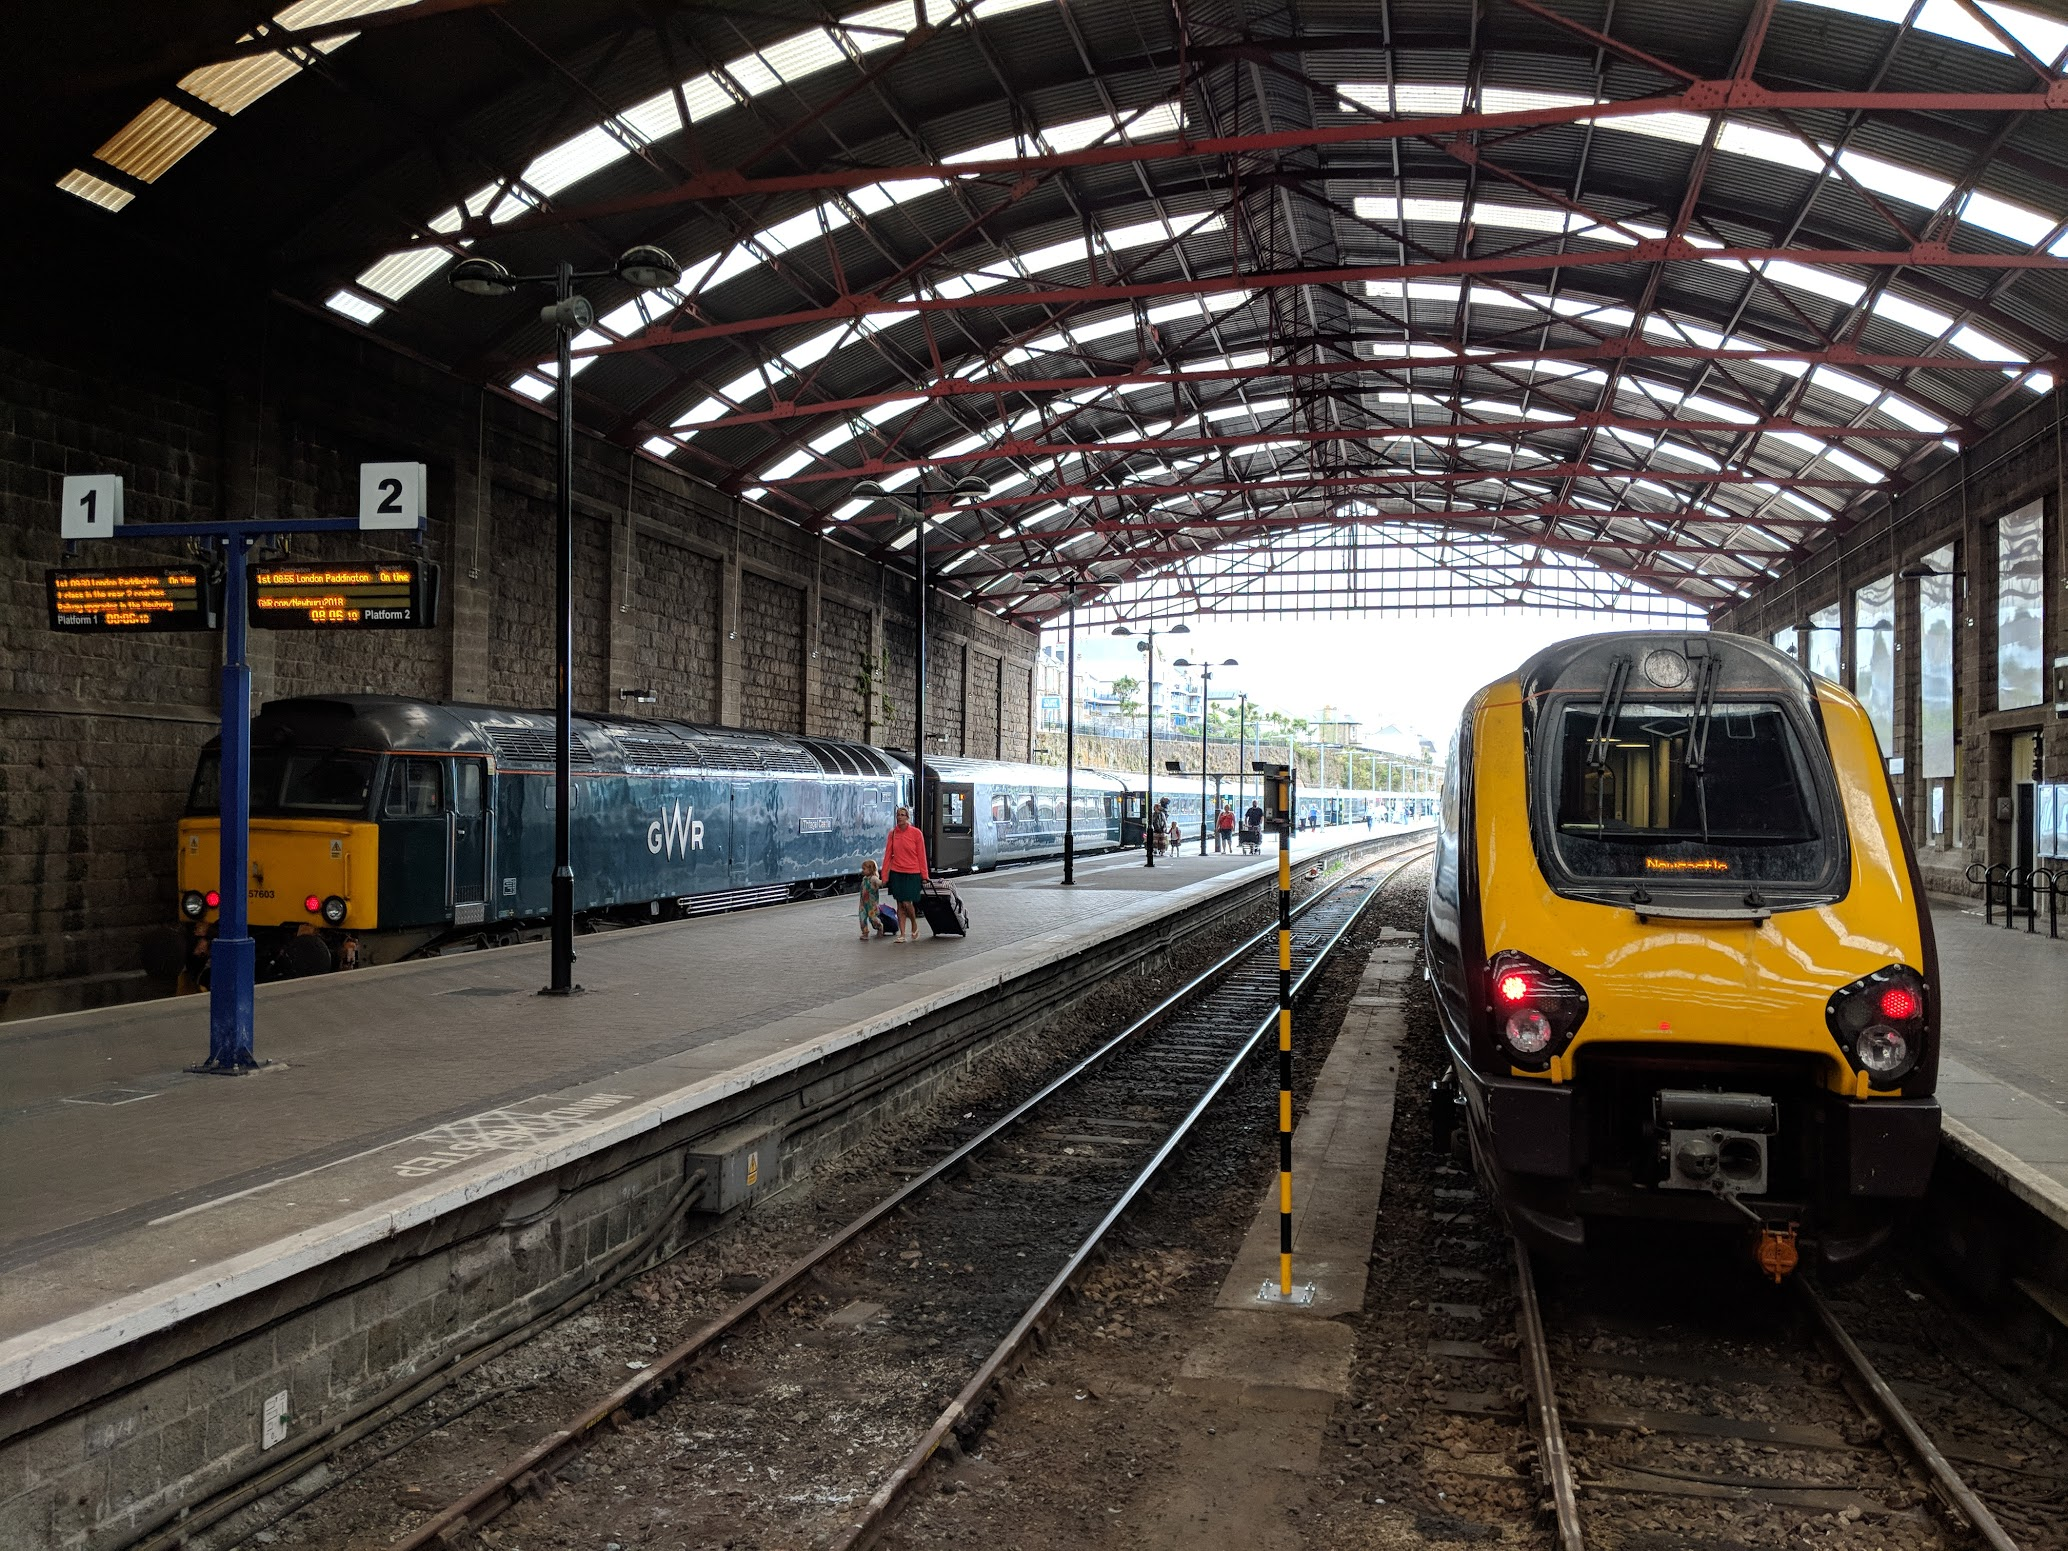 - Old and new trains, side by side. Our arrival in Penzance.